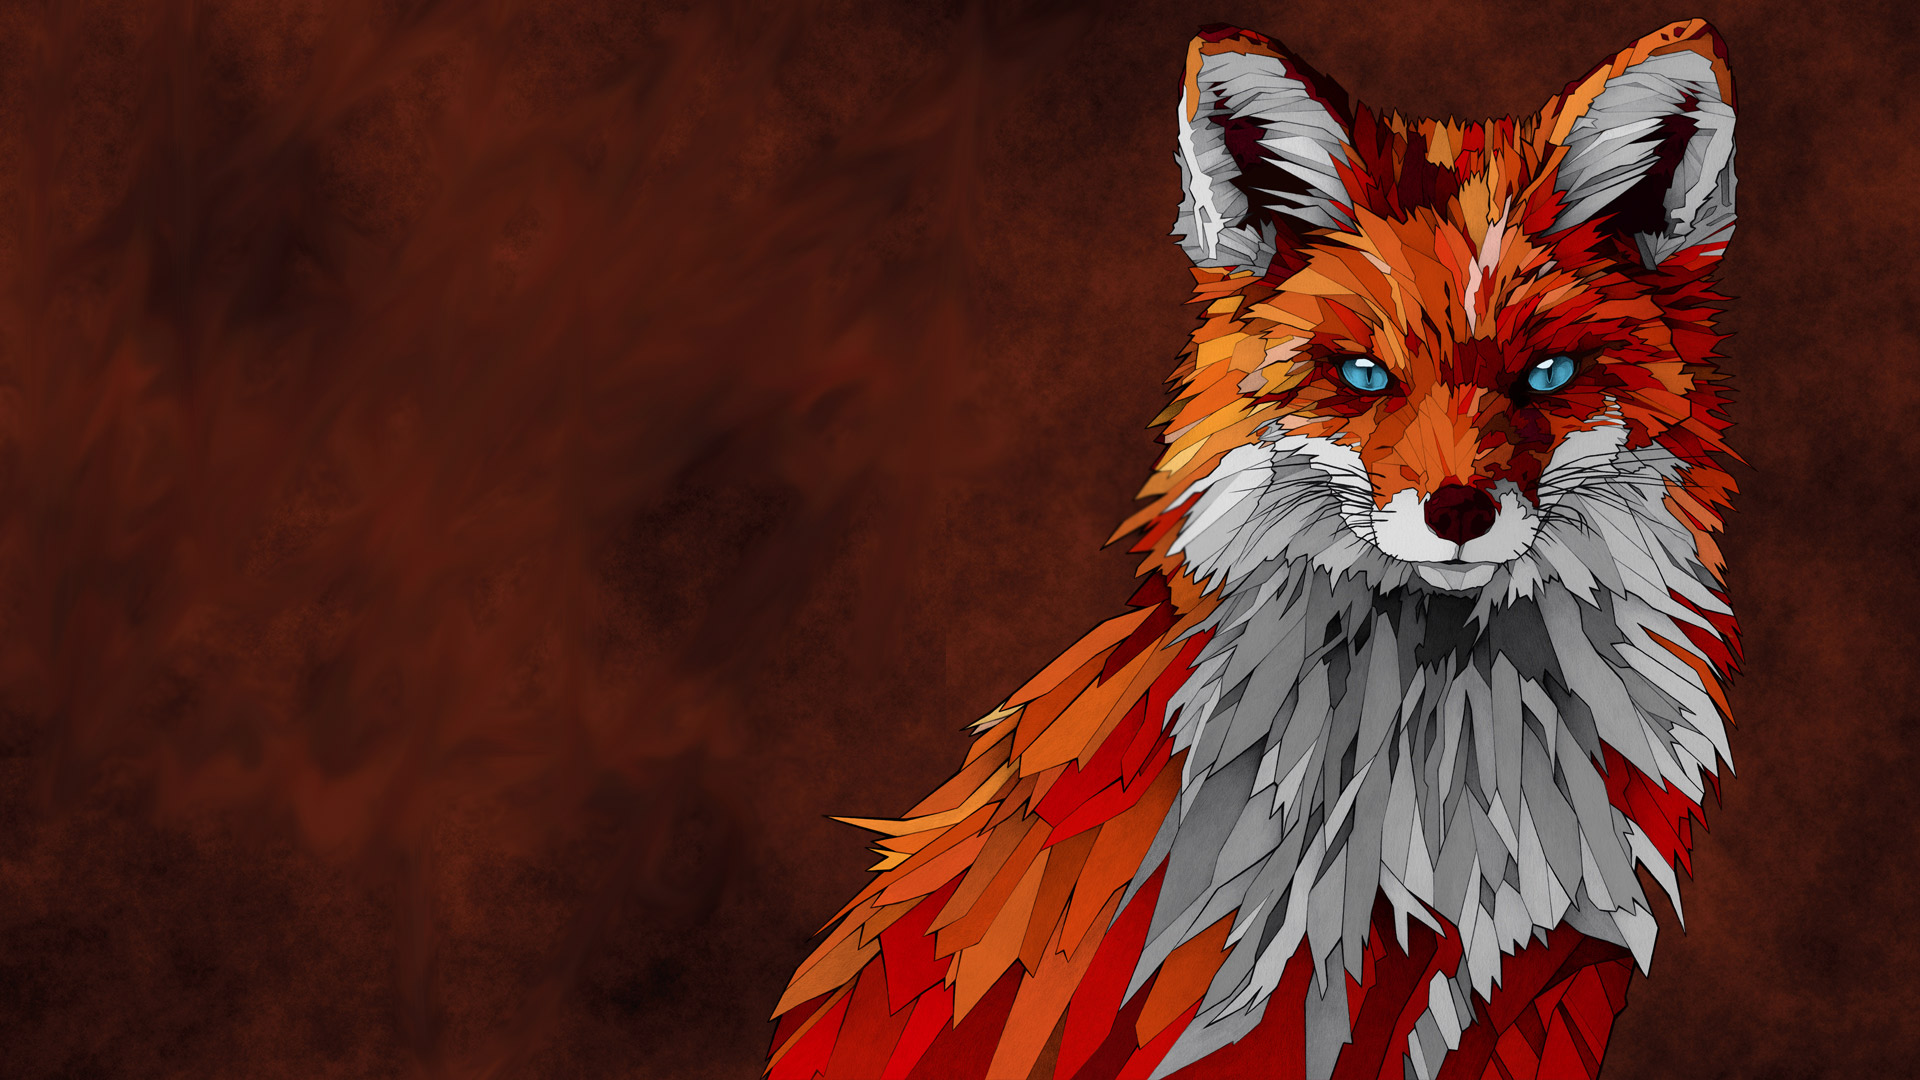 Cute Animated Wallpapers For Mobile Fox Artwork Hd Artist 4k Wallpapers Images Backgrounds